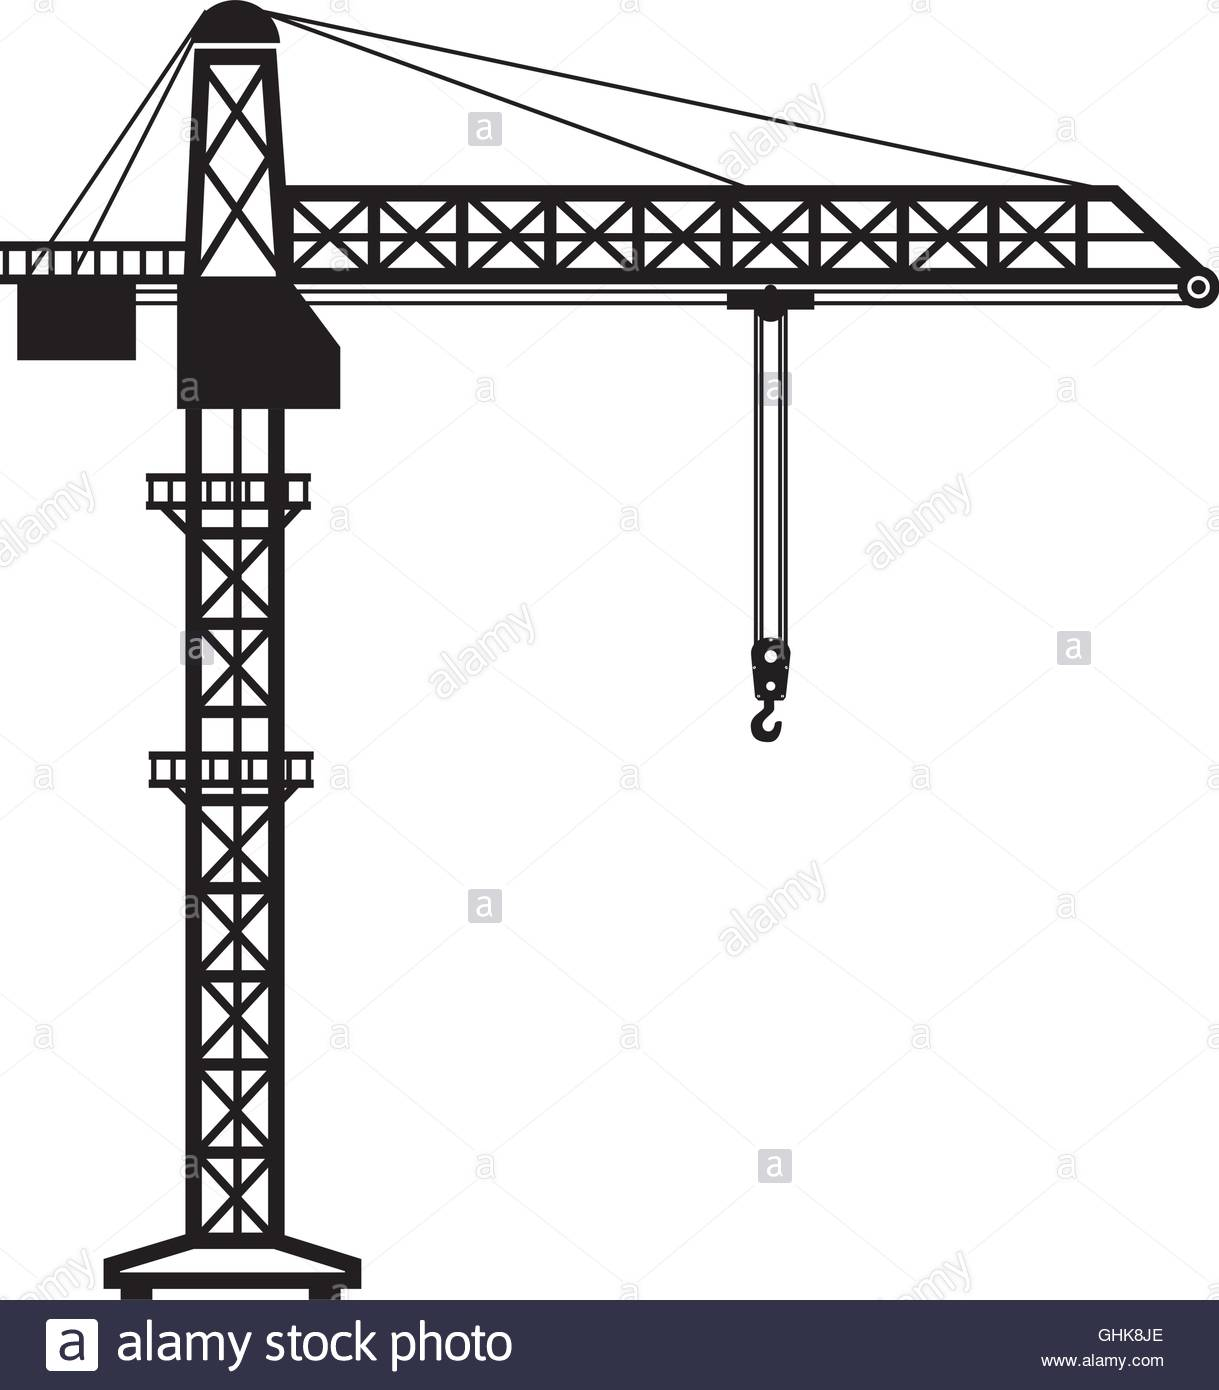 1219x1390 Crane Tower Machinary Hook Hang Icon Vector Graphic Stock Vector